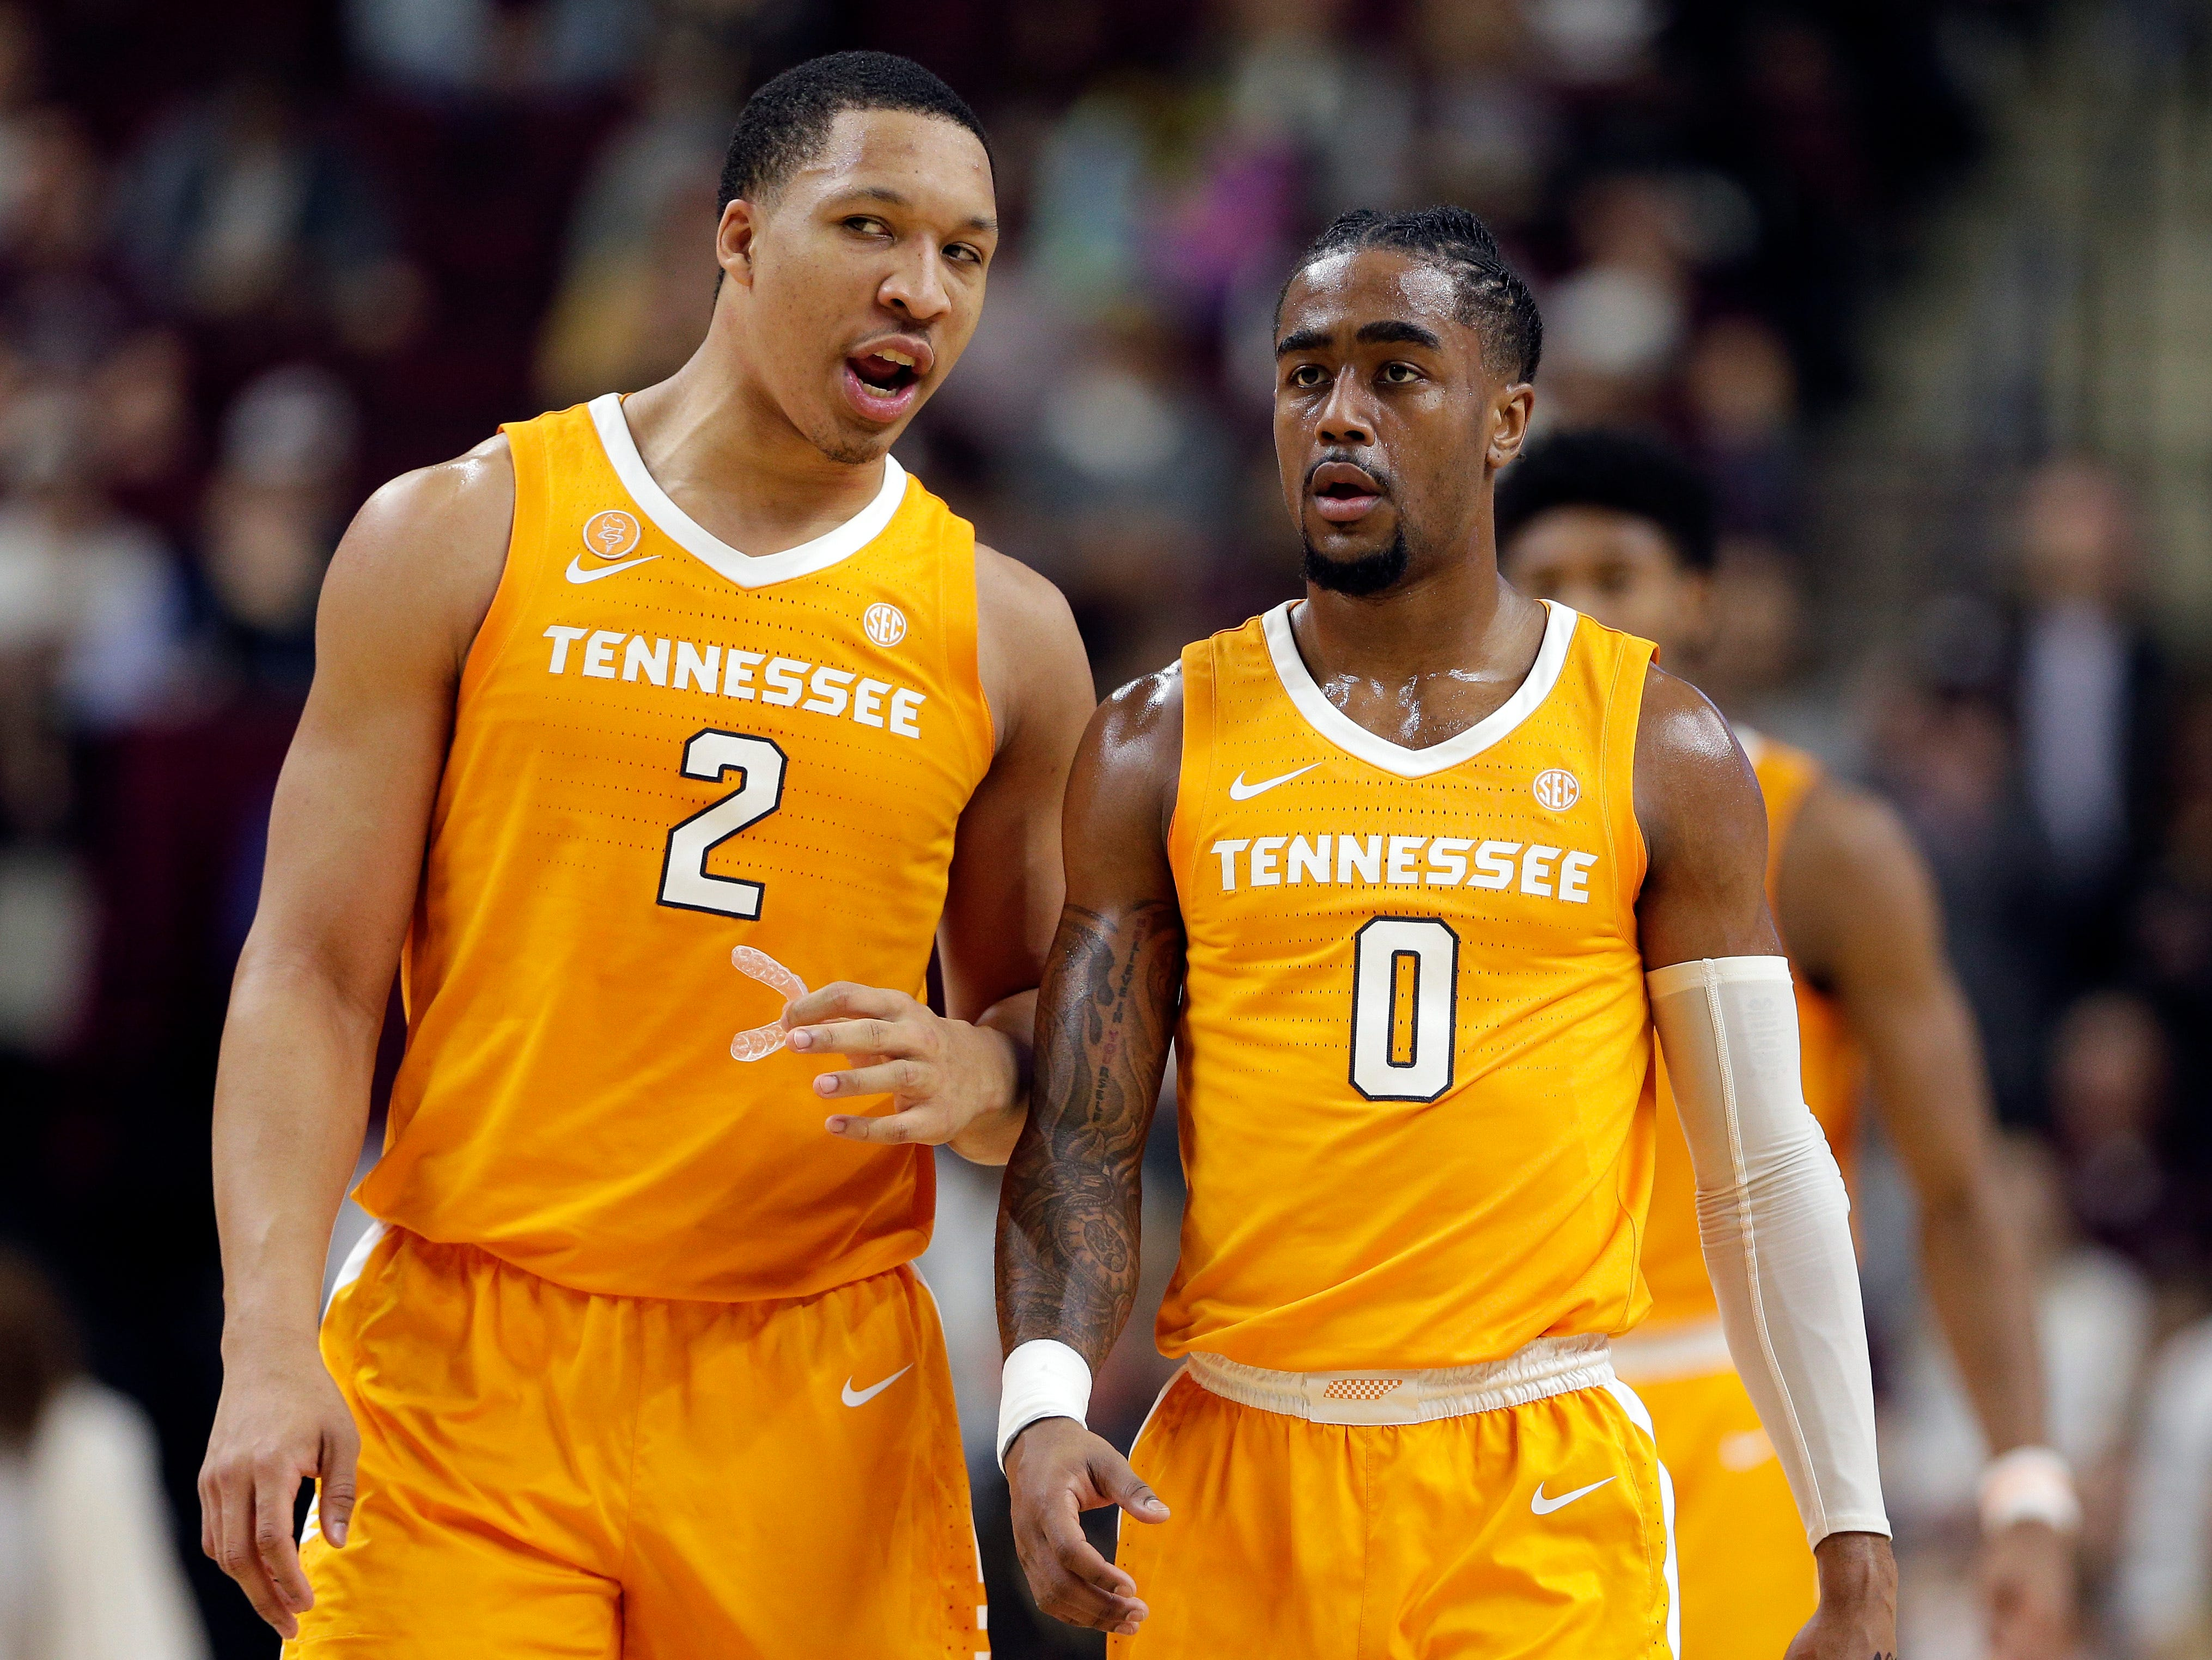 Tennessee forward Grant Williams (2) and guard Jordan Bone (0) talk as they head to the free throw line after a foul during the first half of an NCAA college basketball game against Texas A&M, Saturday, Feb. 2, 2019, in College Station, Texas.